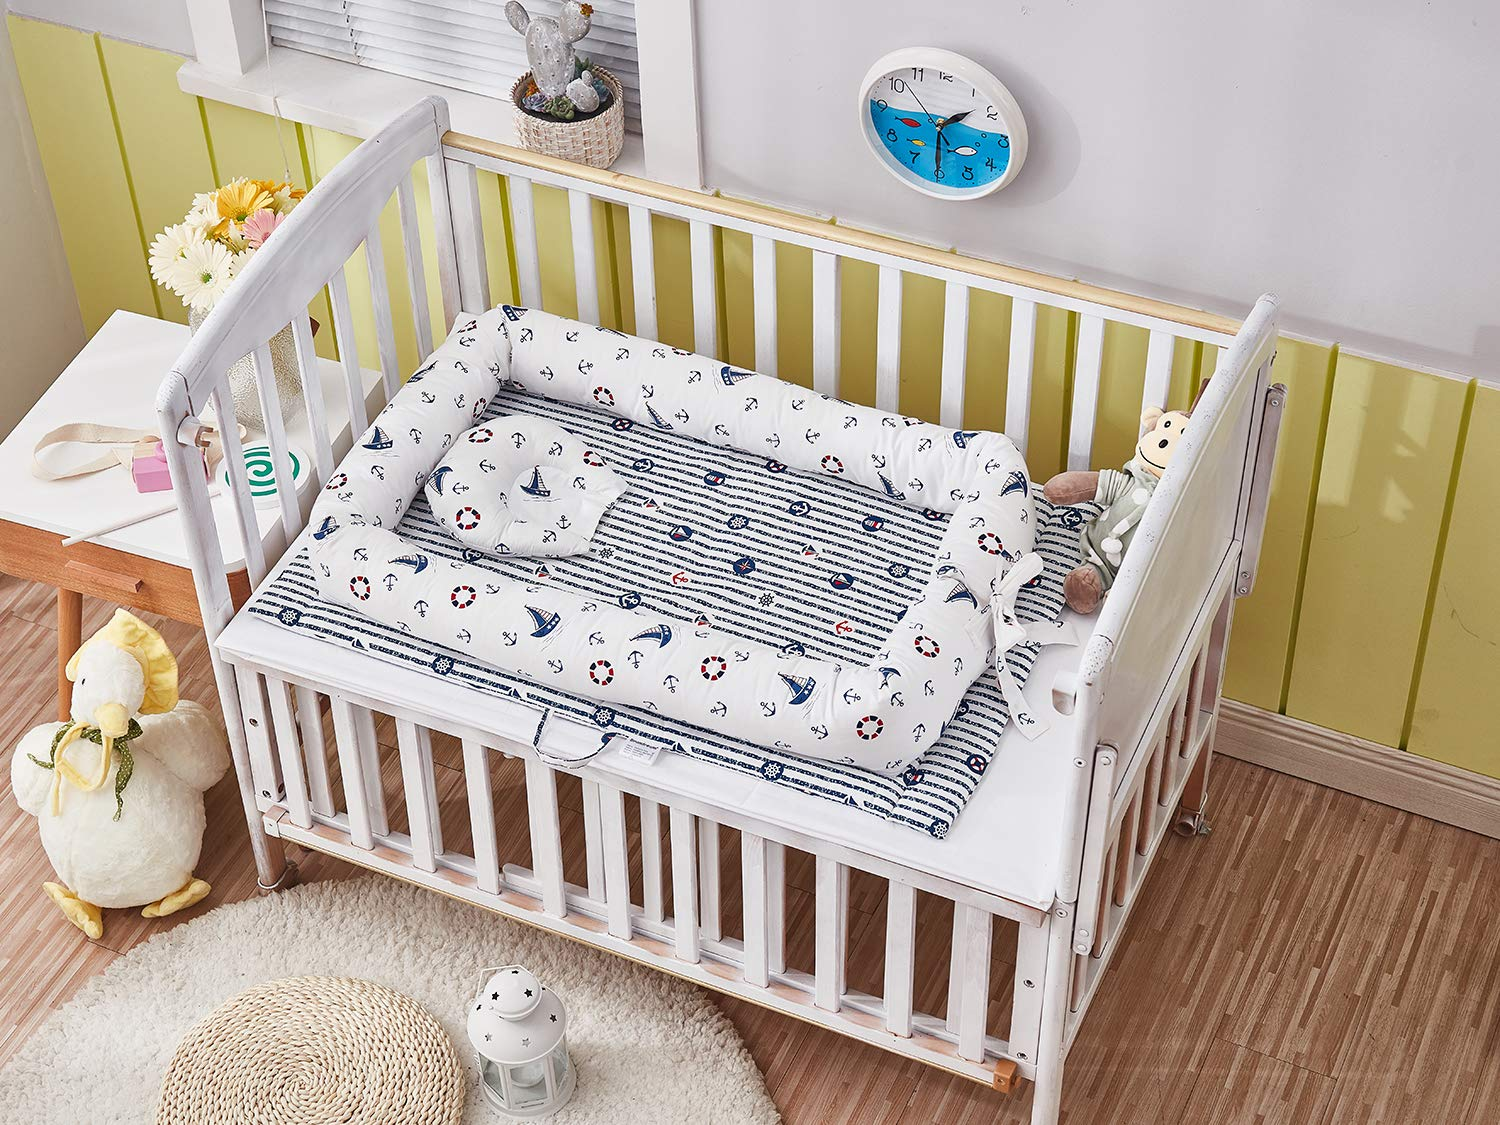 TEALP Baby Bassinet for Bed Newborn Baby Lounger Multifunctional Baby Nest Cotton Portable Crib for Bedroom Travel 0-24 Months